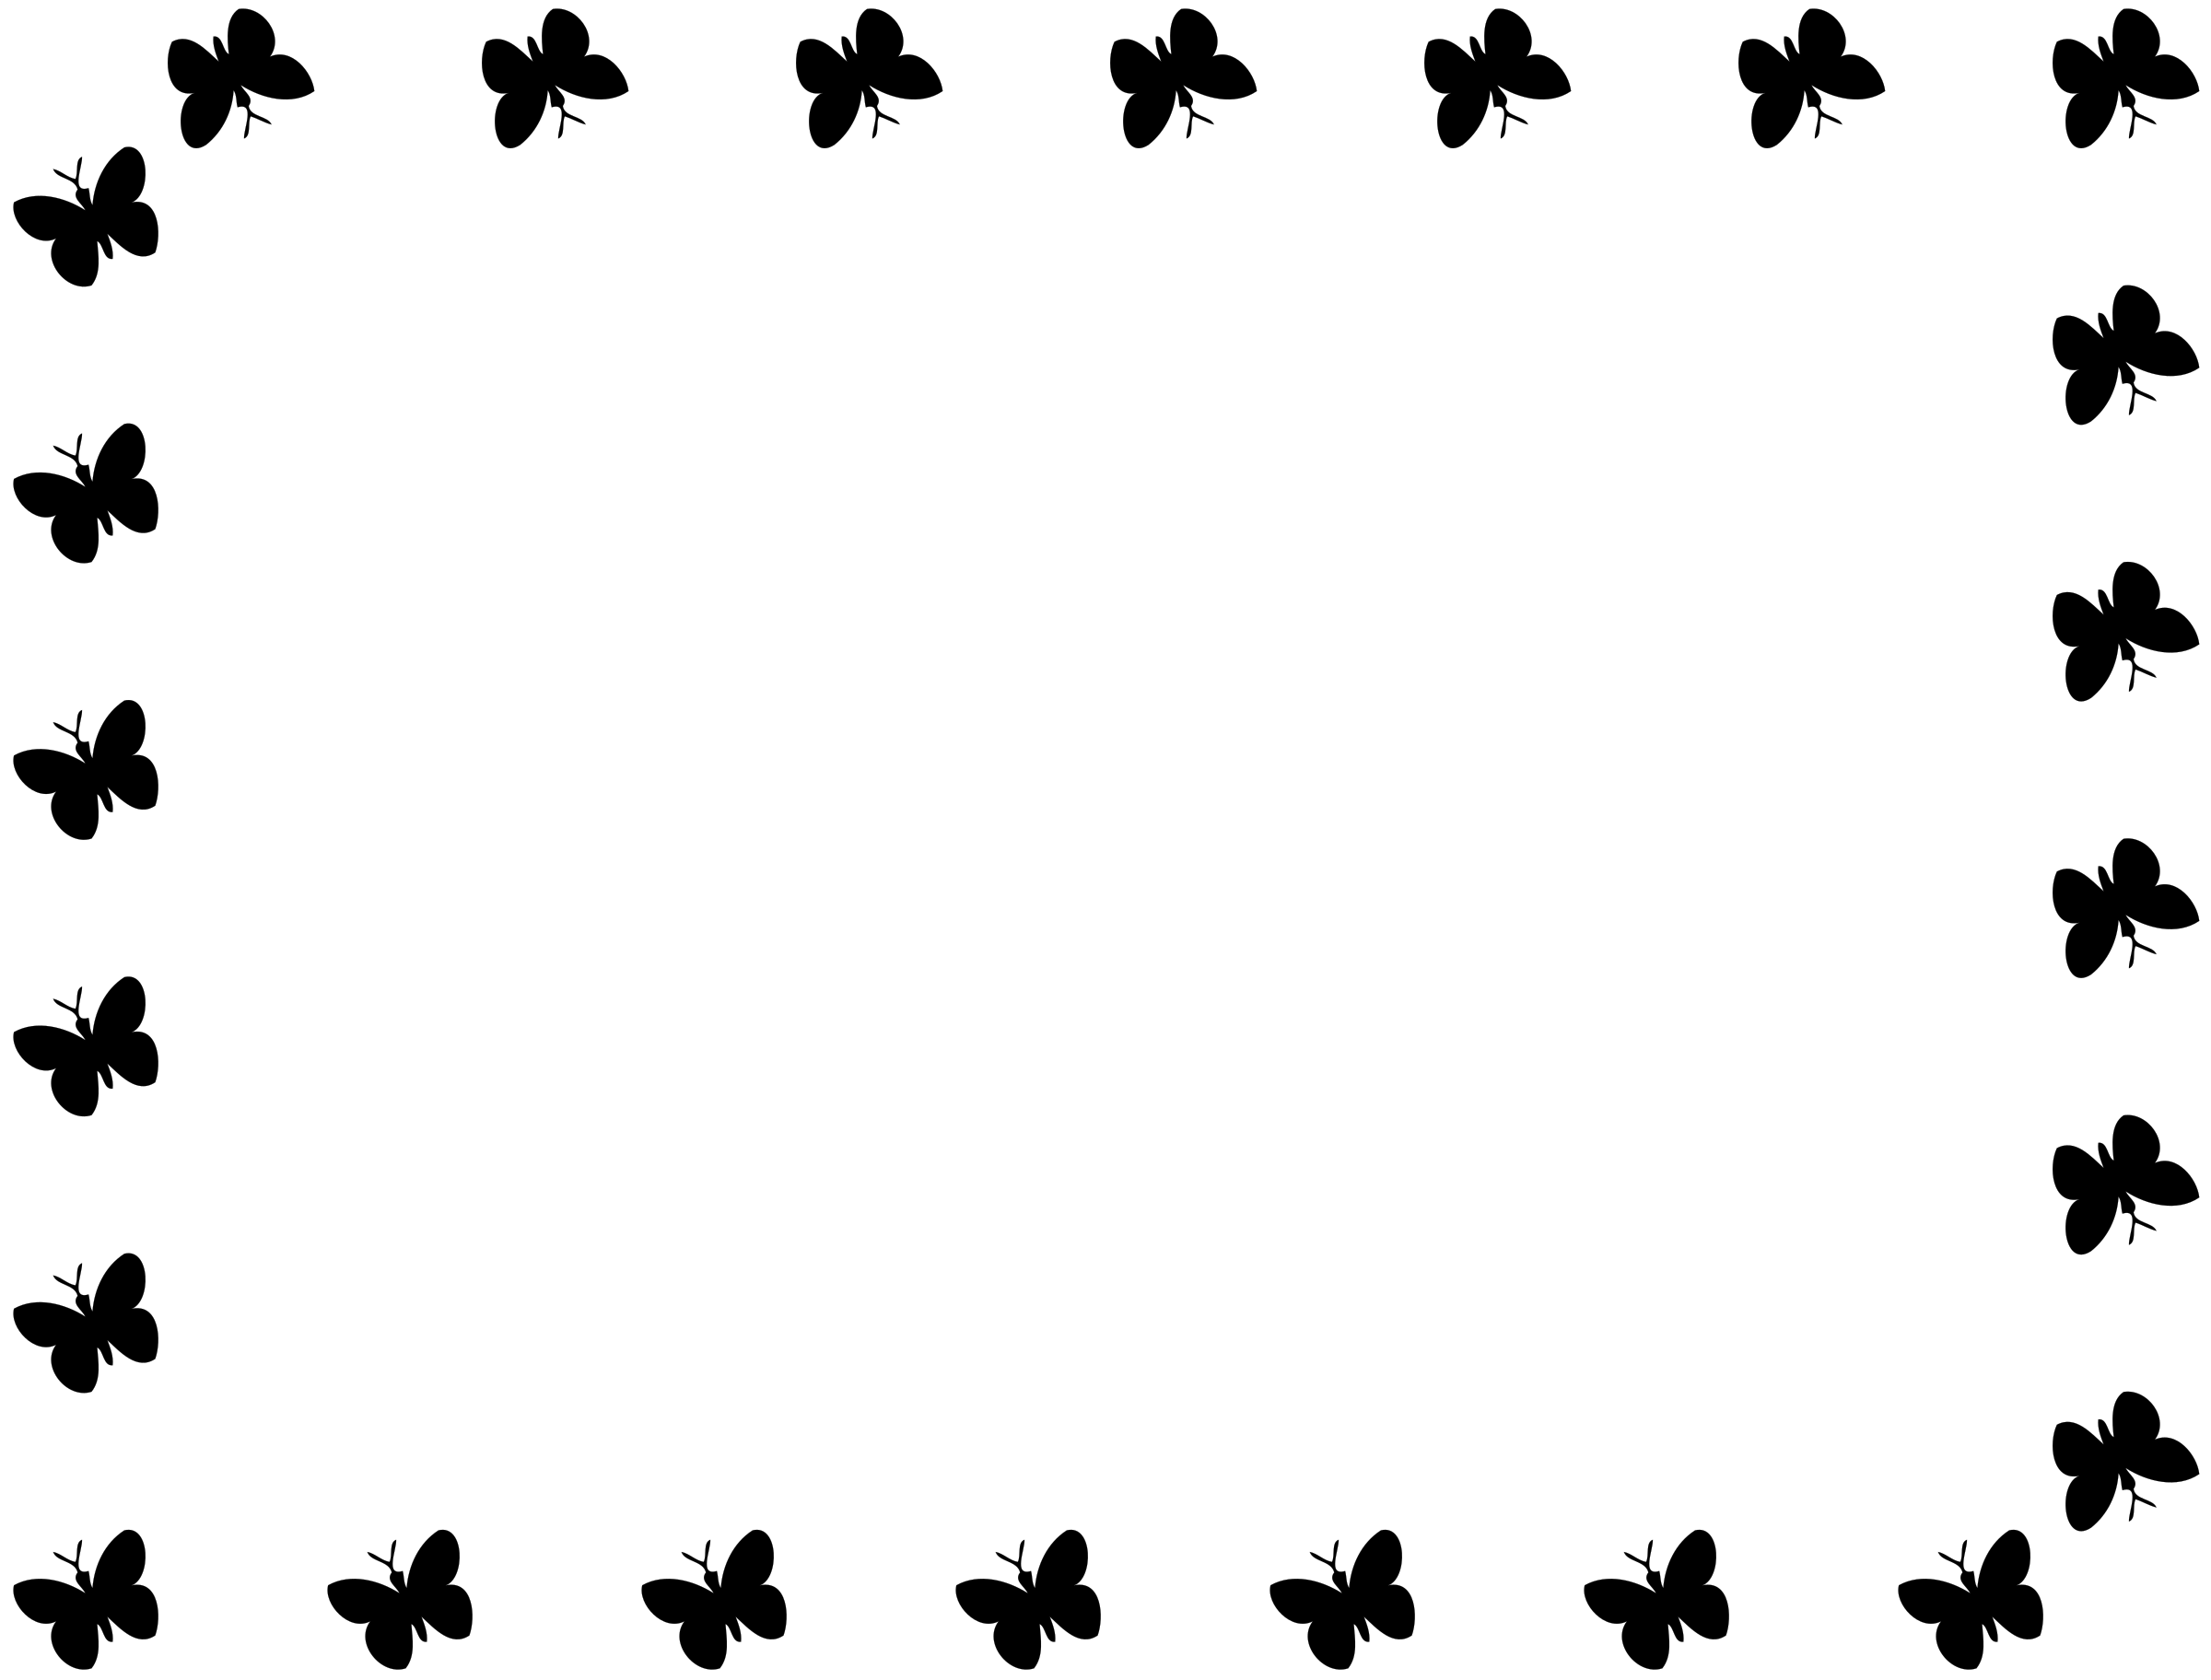 Butterfly Border Clipart Black And White.